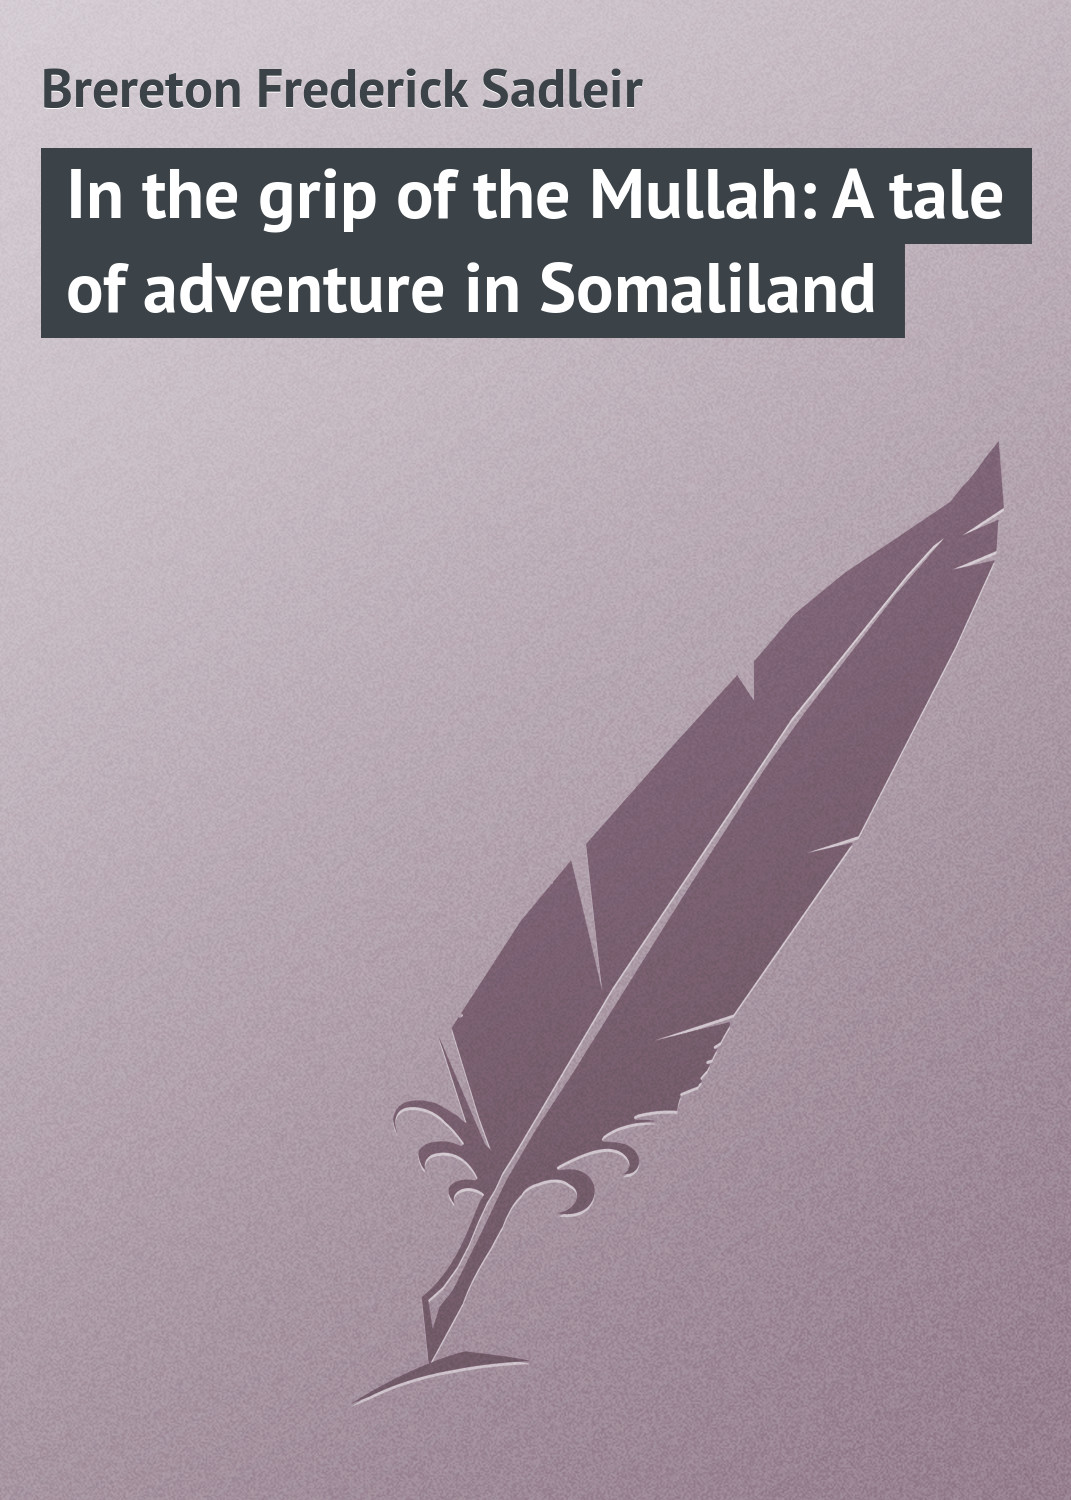 Brereton Frederick Sadleir In the grip of the Mullah: A tale of adventure in Somaliland gerstaecker frederick wild sports in the far west